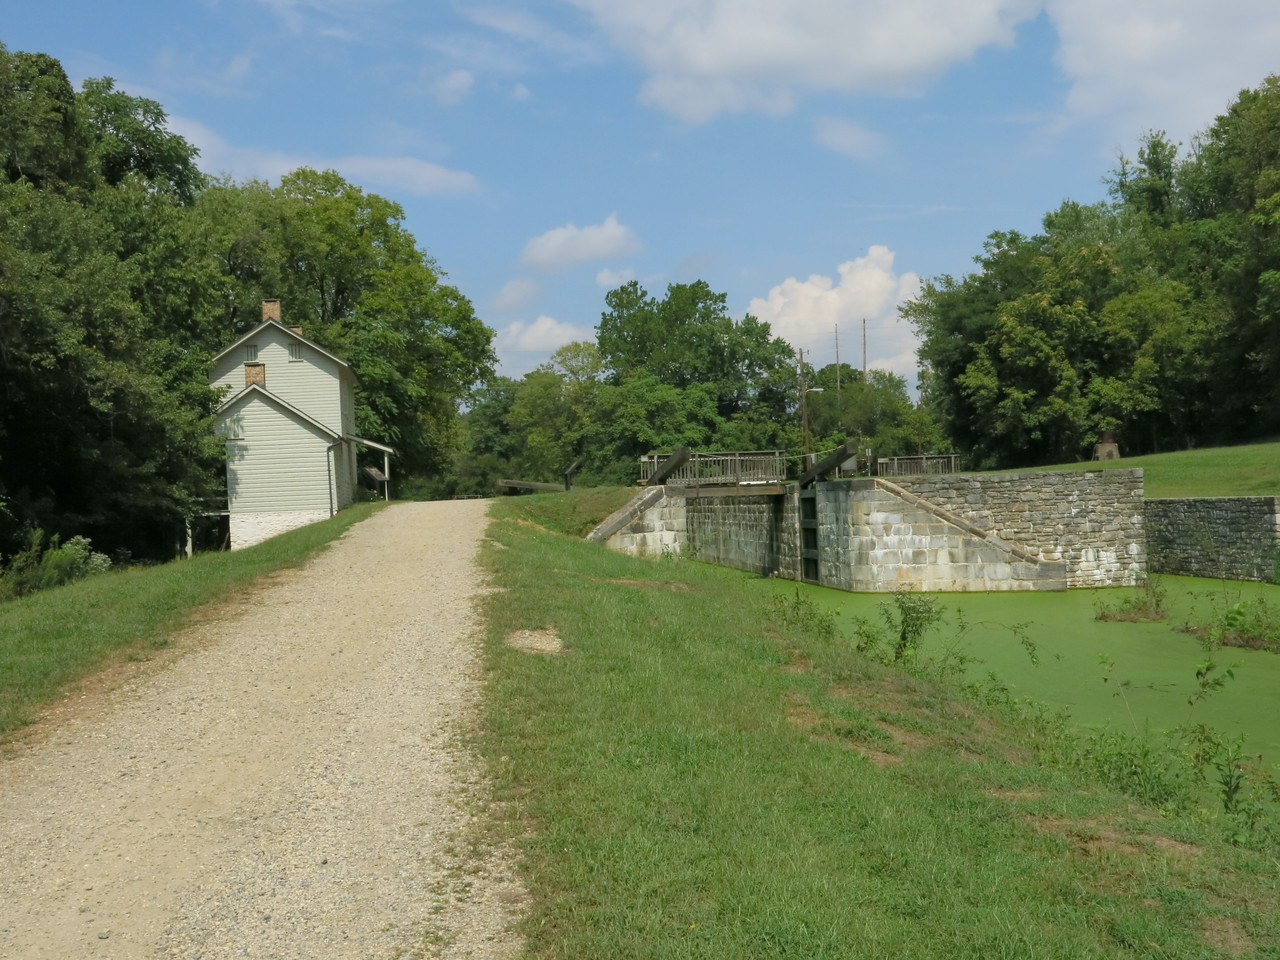 Lock 44, Lockhouse and Towpath at MP 99.3